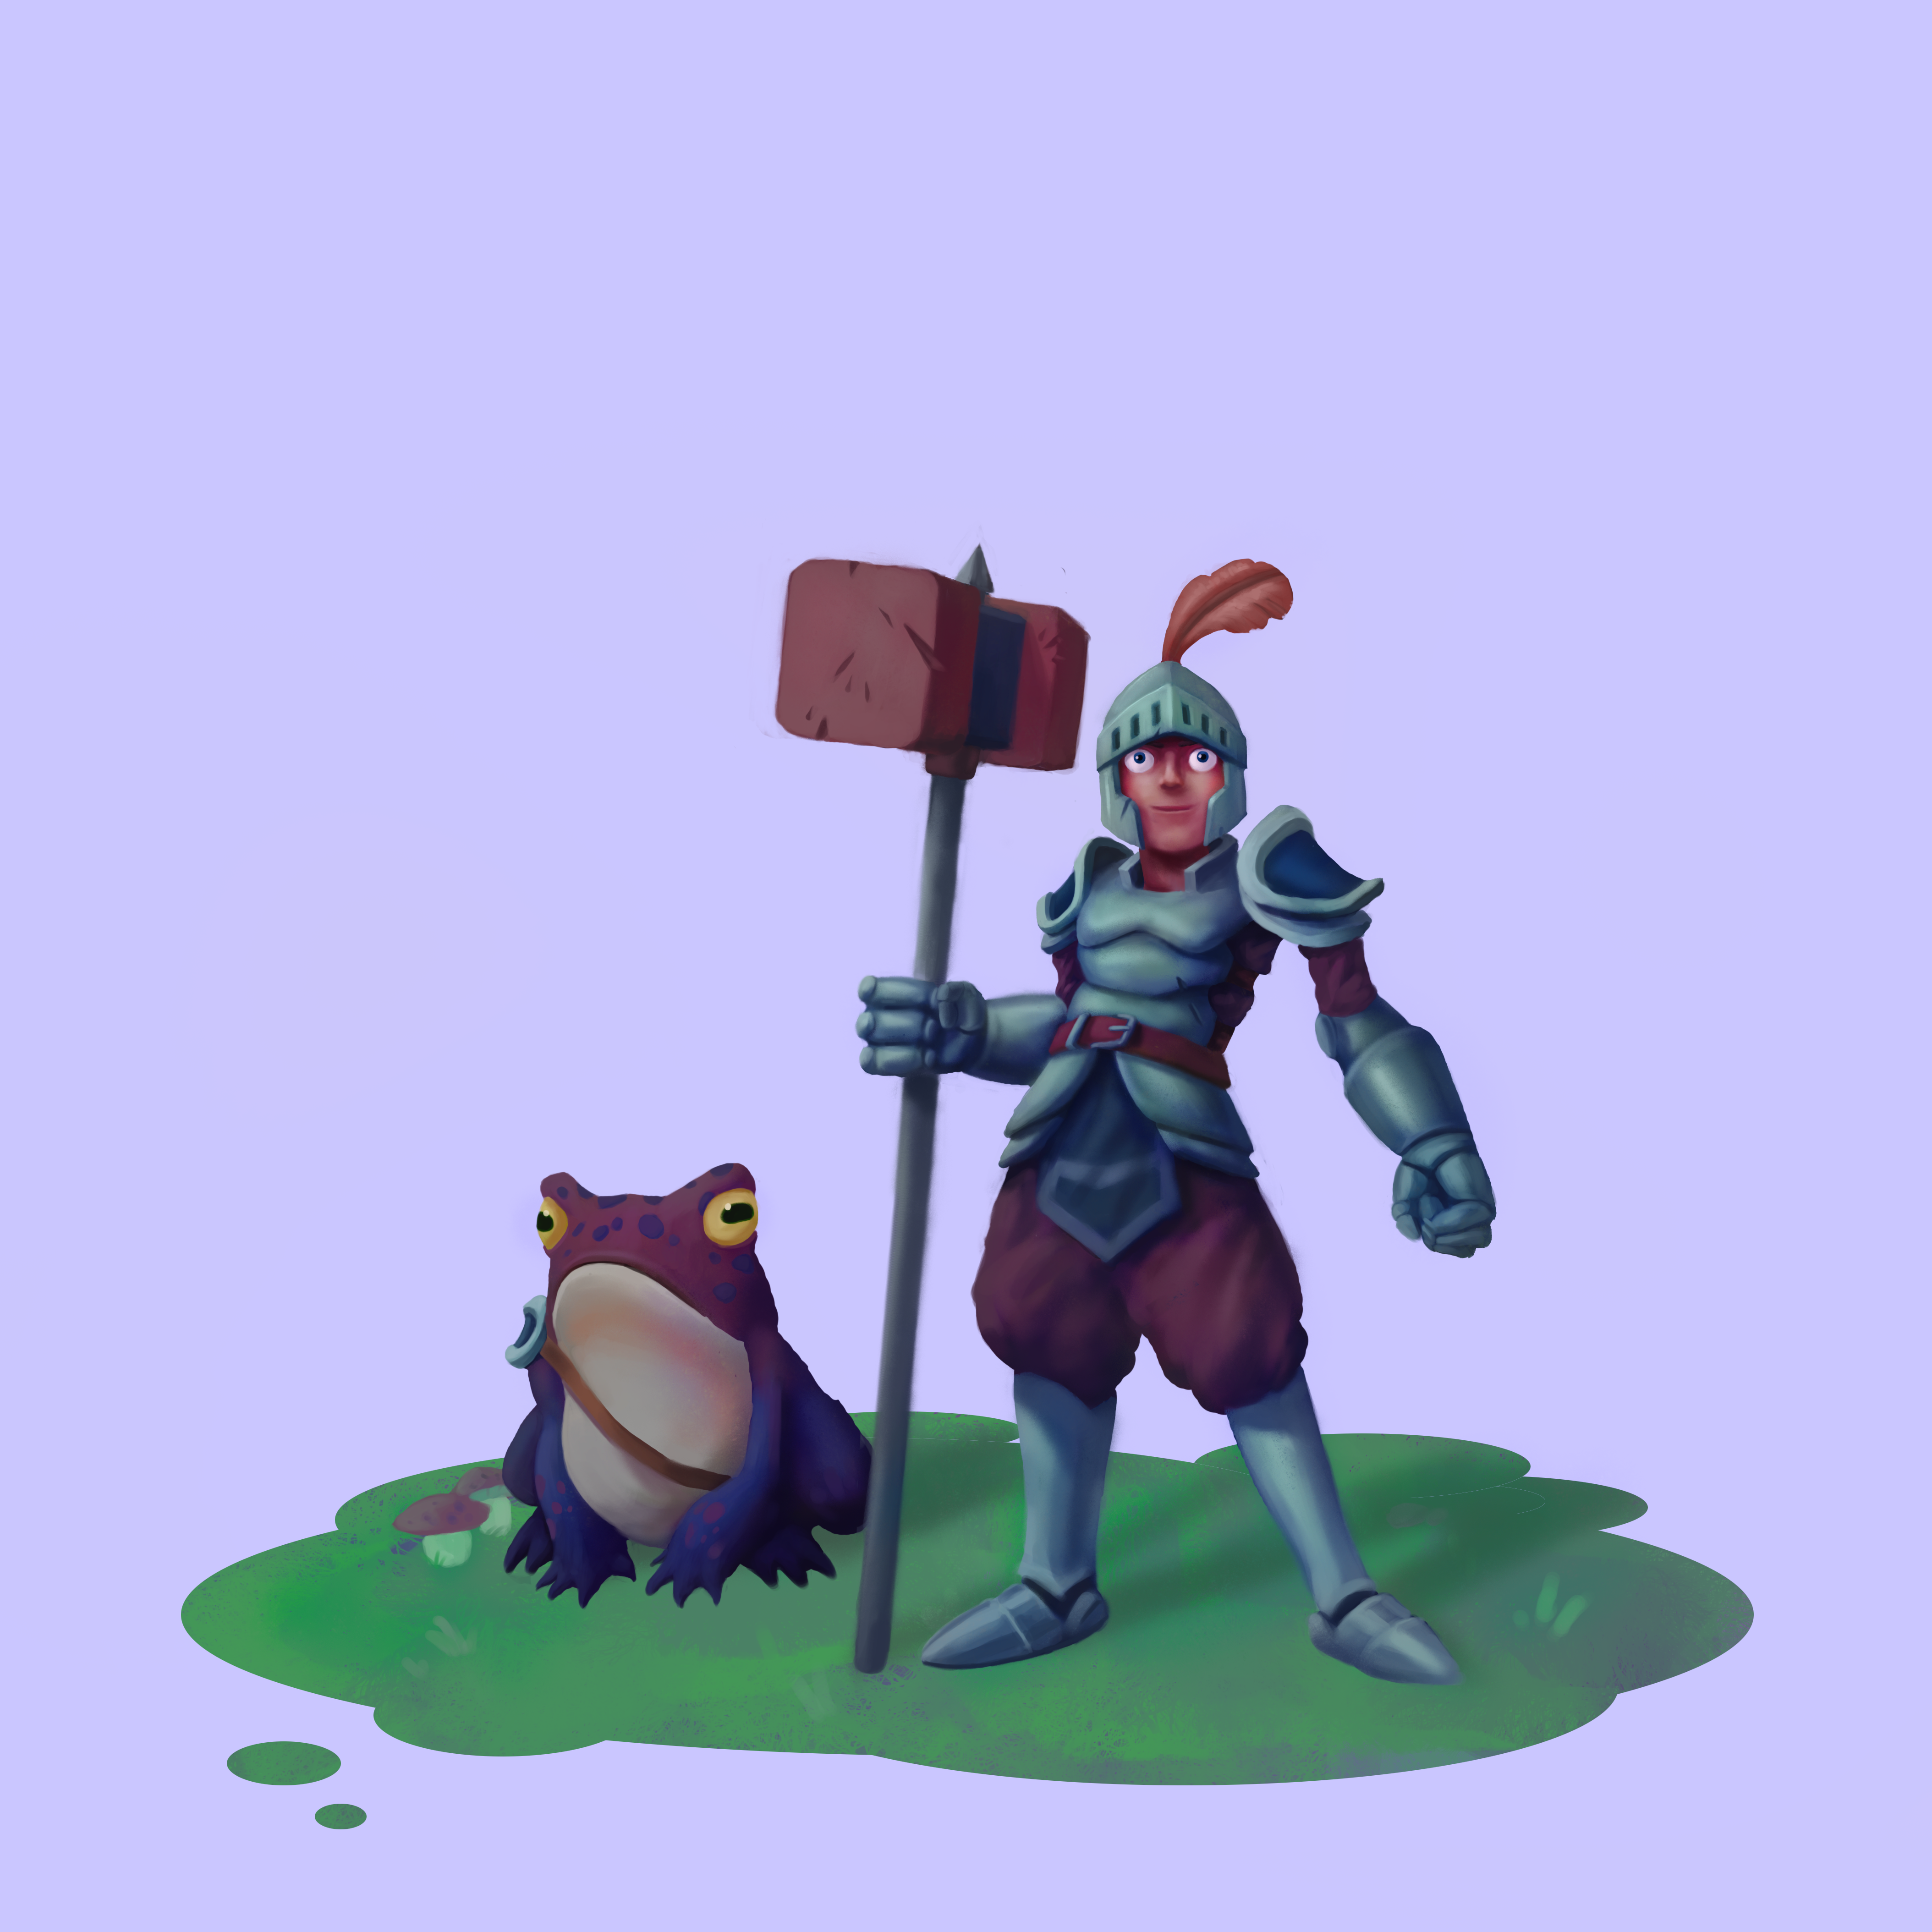 Knight and his toad companion